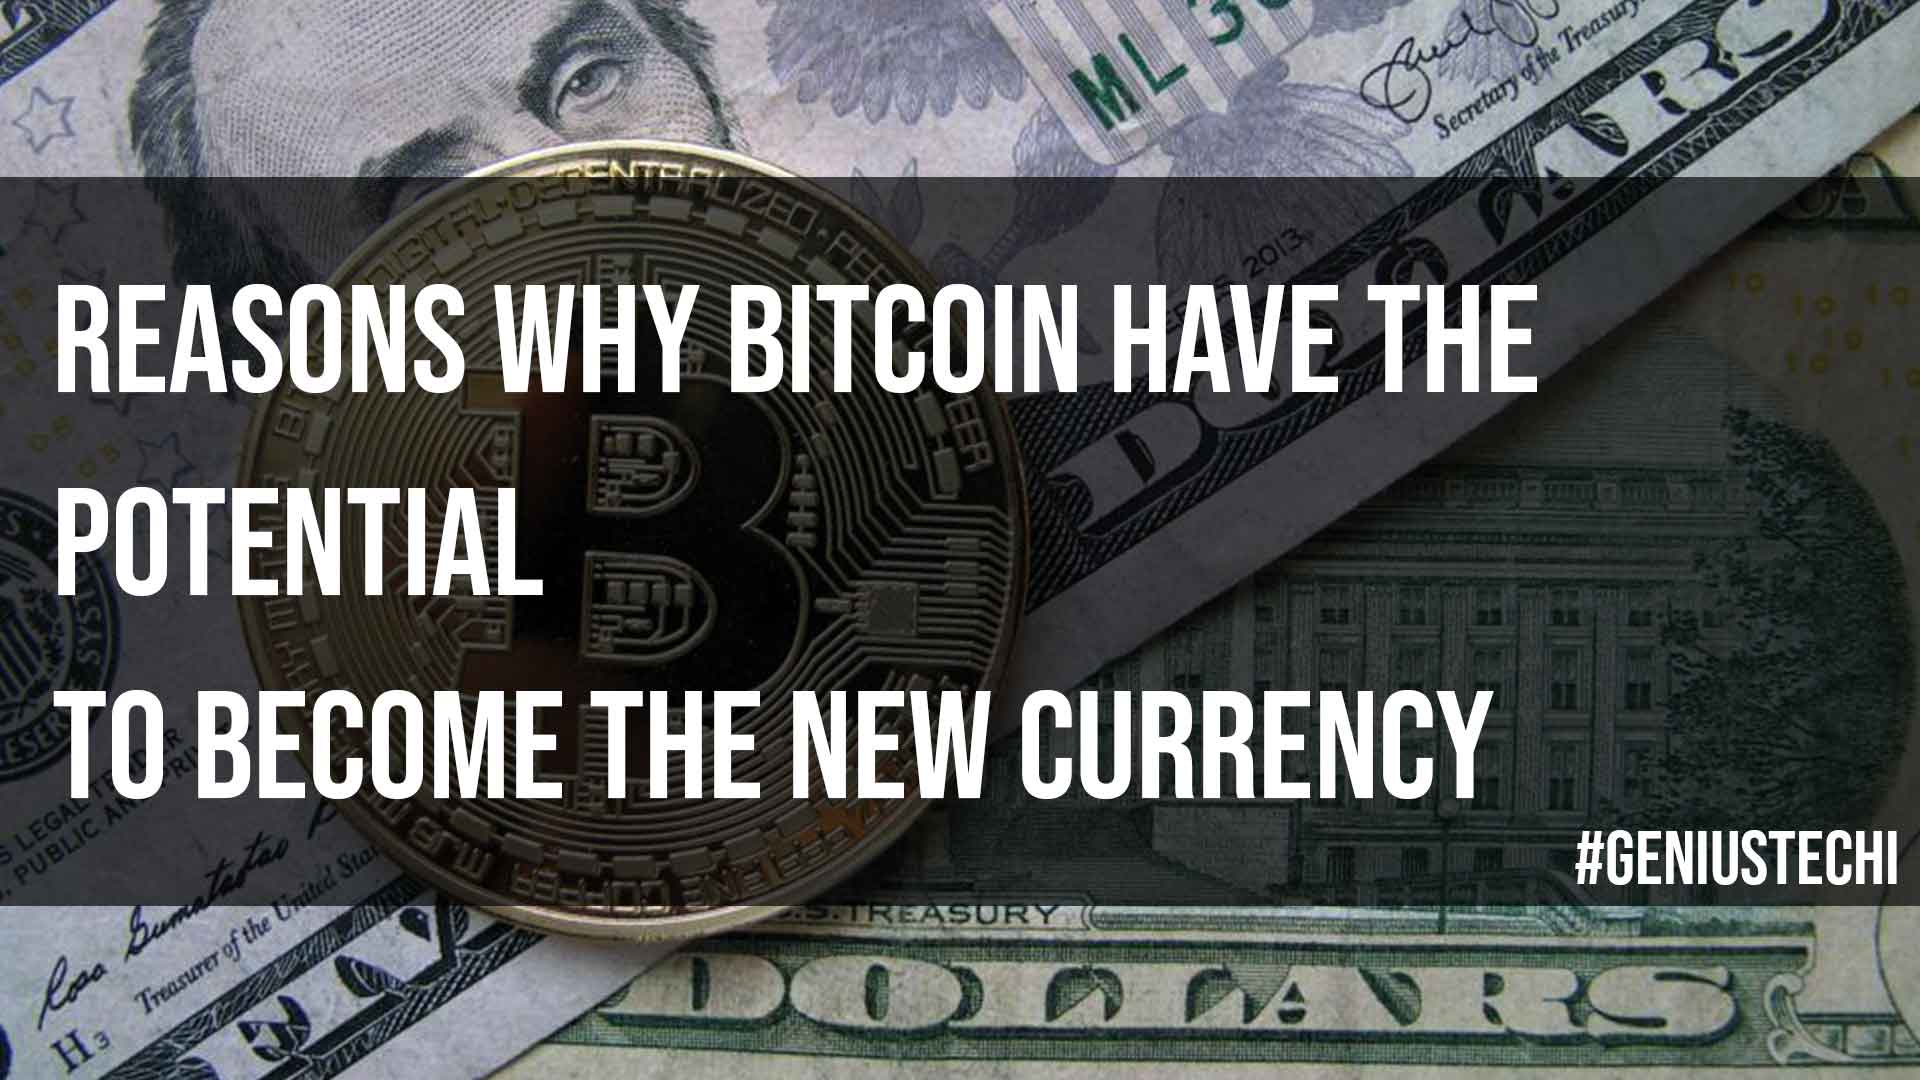 Reasons Why Bitcoin Have the Potential to Become the New Currency